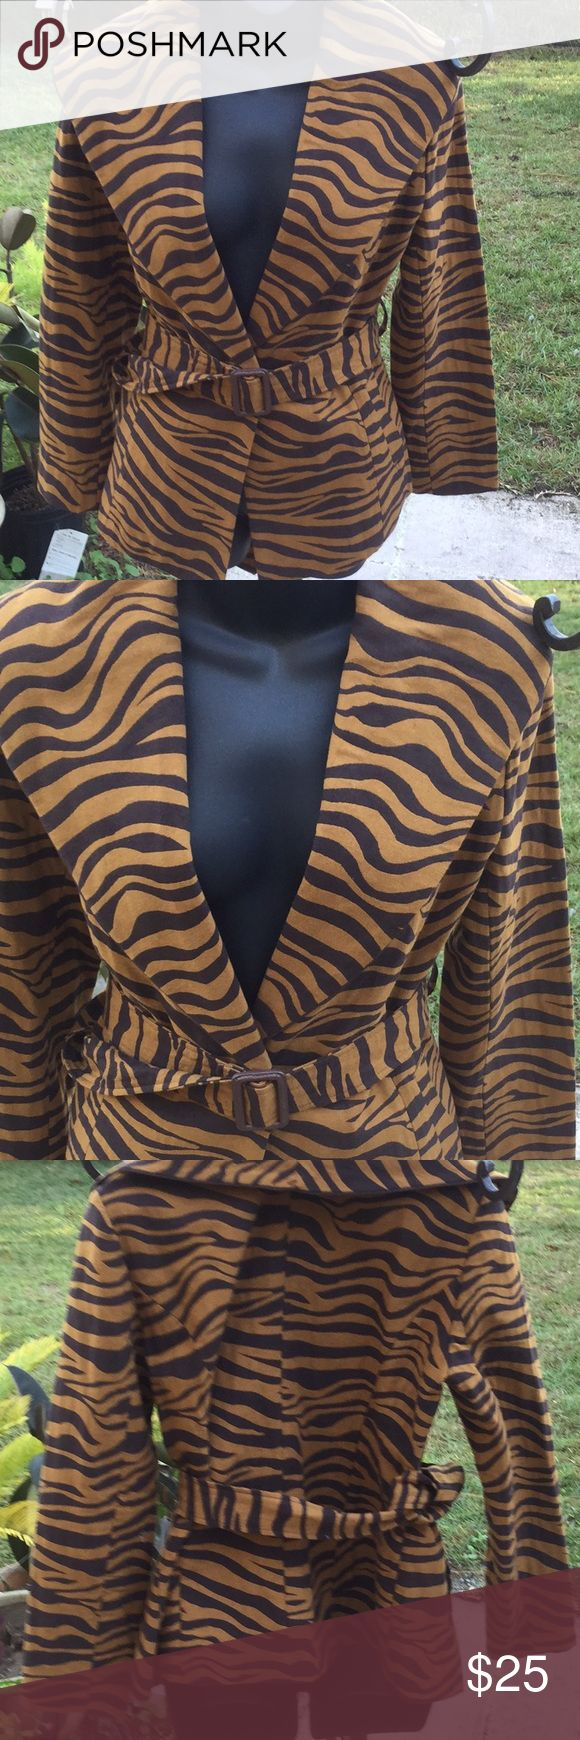 NWT Outrageous Sz Med Leopard Jacket 🐆 🐆You Gotta Have This NWT Brand New Never Worn Size Med Clara S Leopard Button 🐆Up Jacket / Blazer Wrap Around Belt / 2 Pockets 🐆 Measures 28 inches From Shoulder to Hem of Jacket 🐆Perfect Addition to Your Wardrobe 🐆Remember Leopard is Timeless 🐆I Live in Smoke Free Home 🐆Thanks For Looking 🐆Bye Bye Clara S Jackets & Coats Blazers